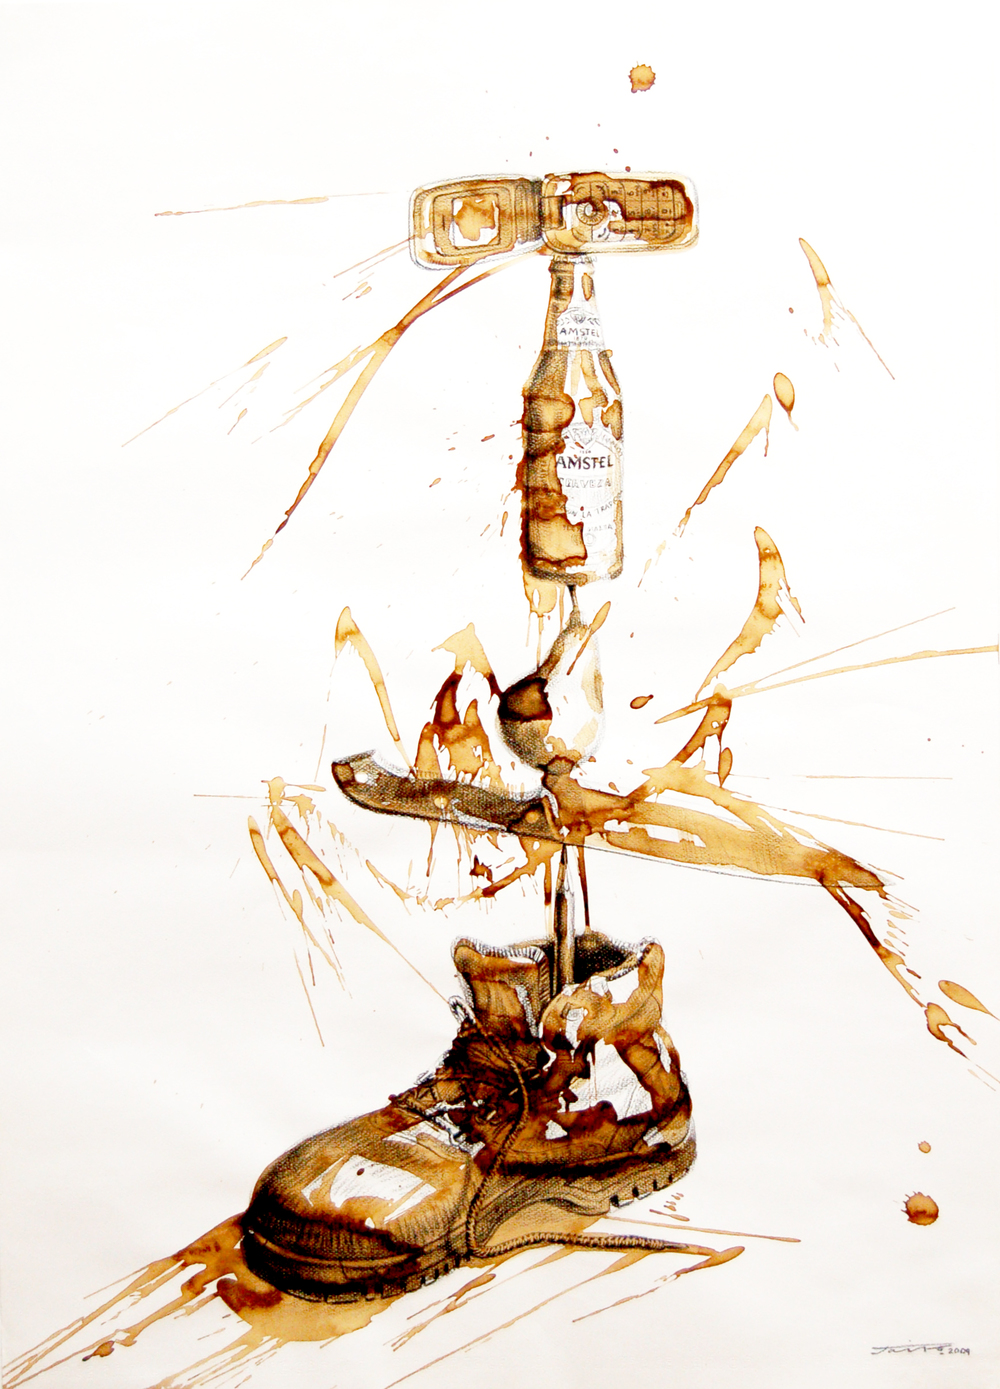 JairoAlfonso,Untitled, Equilibrium Series, Mixed Media on Paper, 2009, 77cm x 55cm